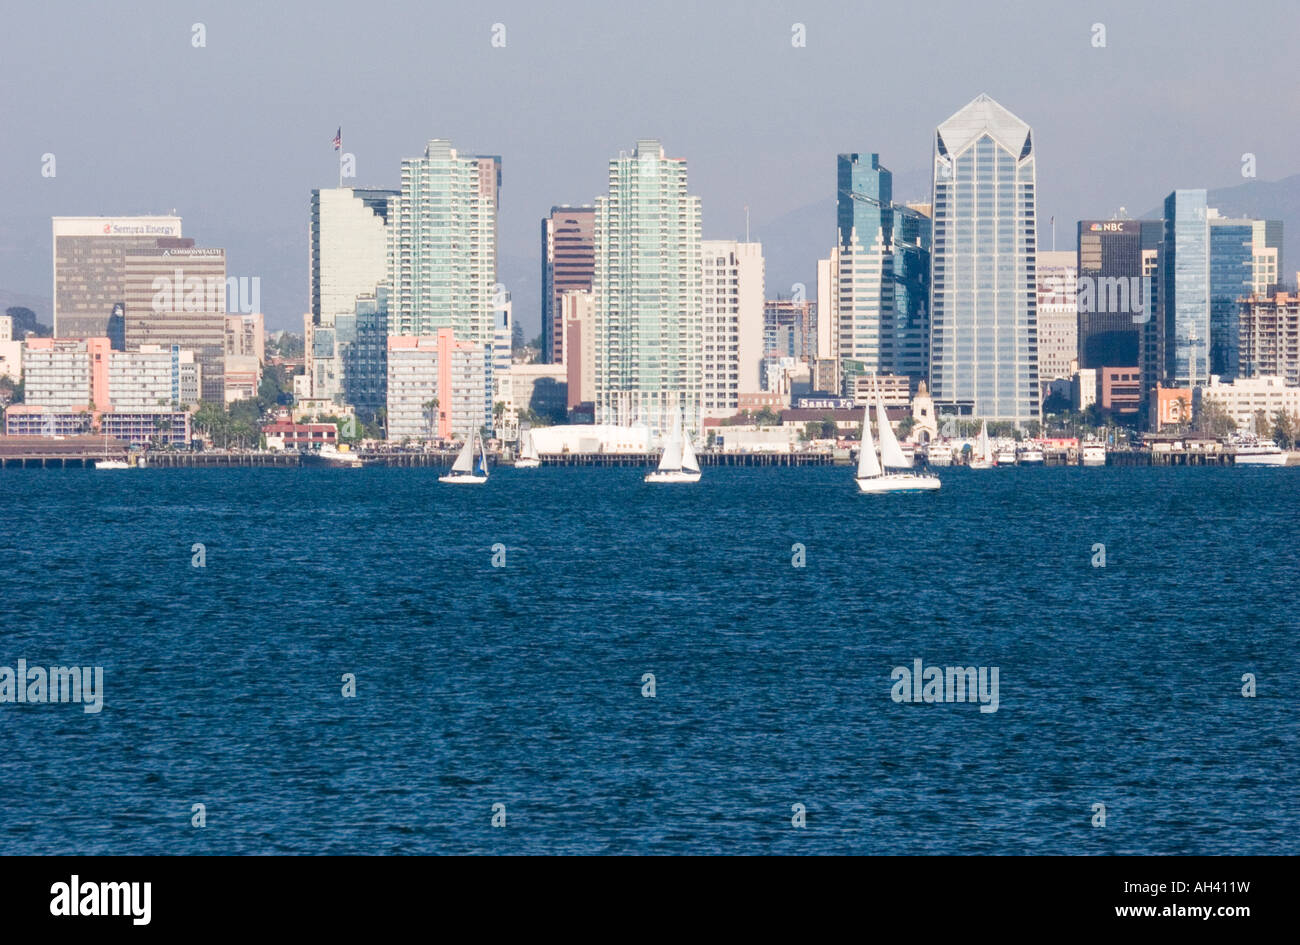 The San Diego Skyline On A Beautiful Summer Day With Sailboats And Deep Blue Water Of Bay In Foreground